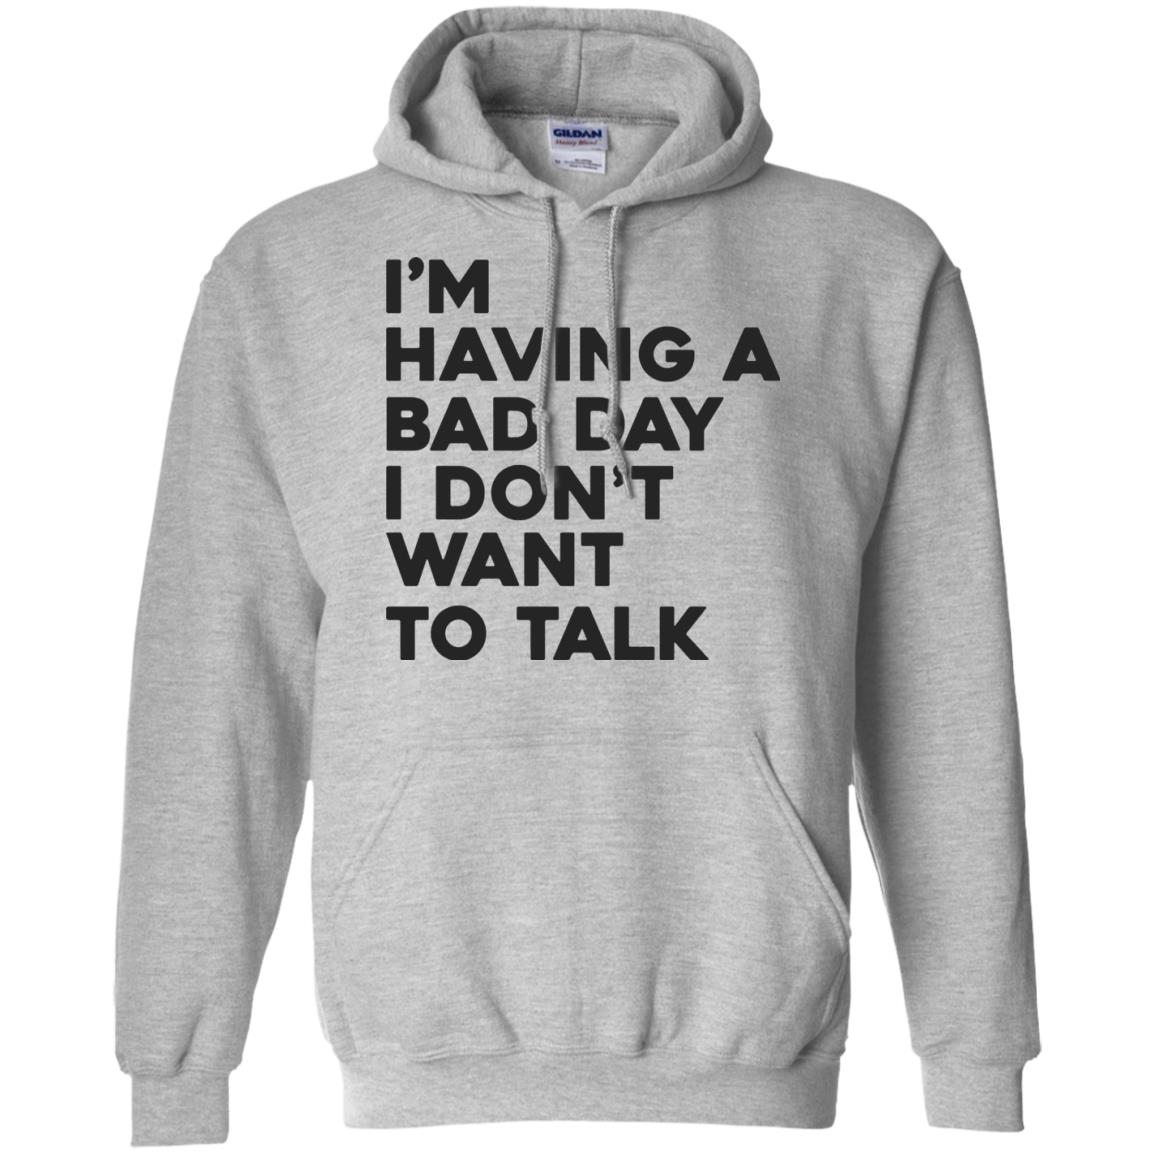 image 238px I'm having a bad day I don't want to talk t shirt, hoodies, tank